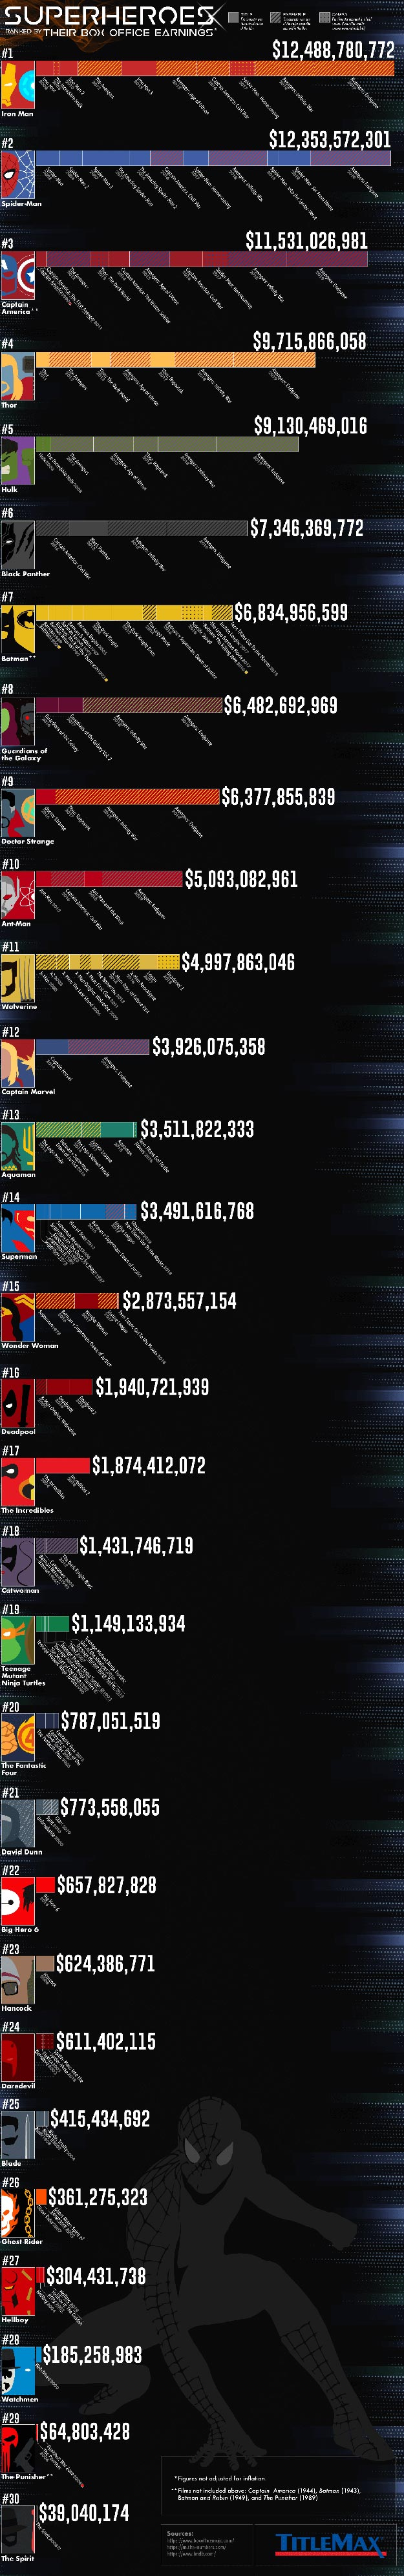 Infographic for Superheroes Ranked by Their Box Office Earnings